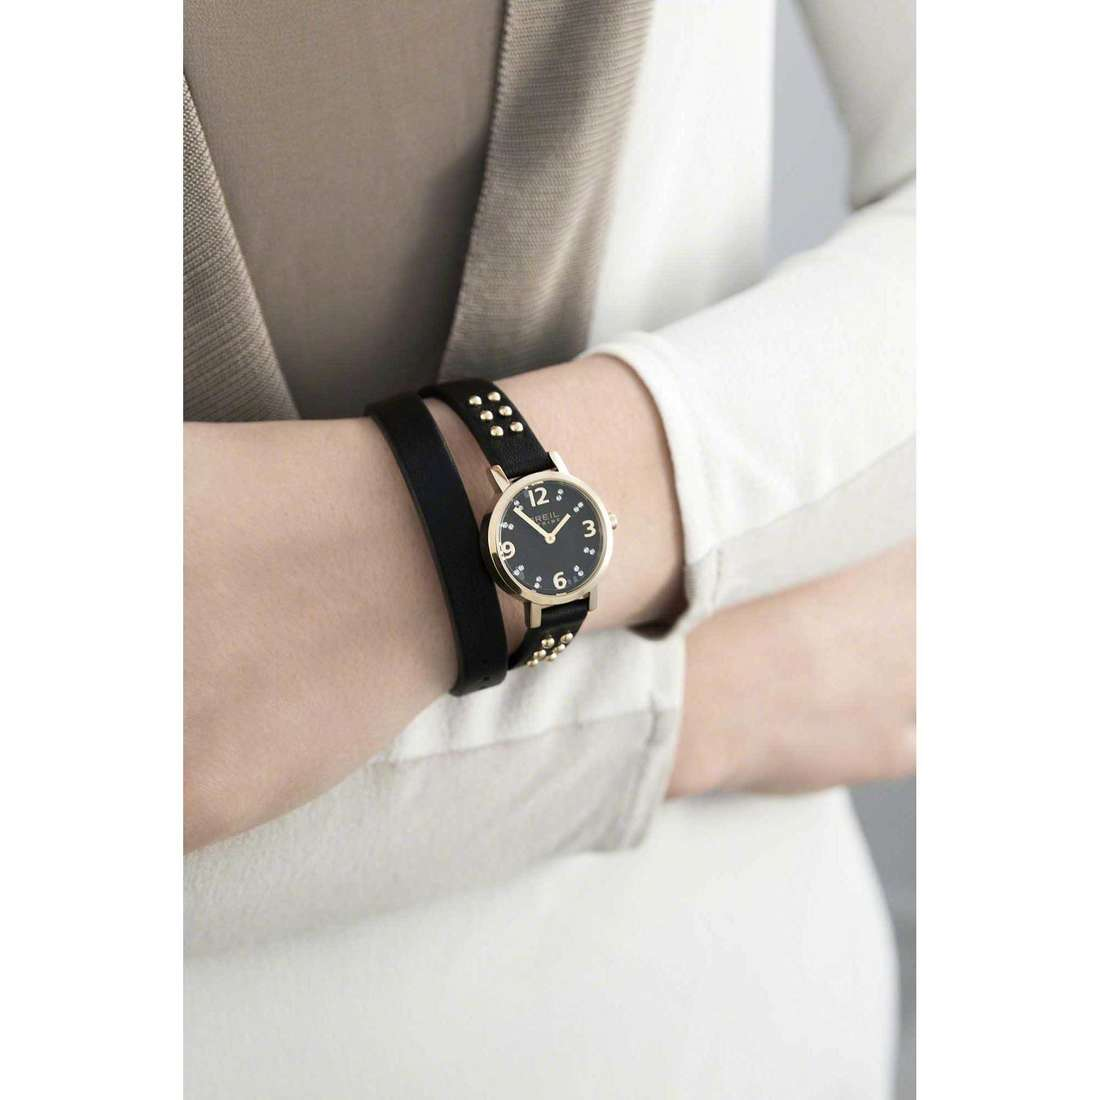 Breil seul le temps Meet Up femme EW0220 indosso